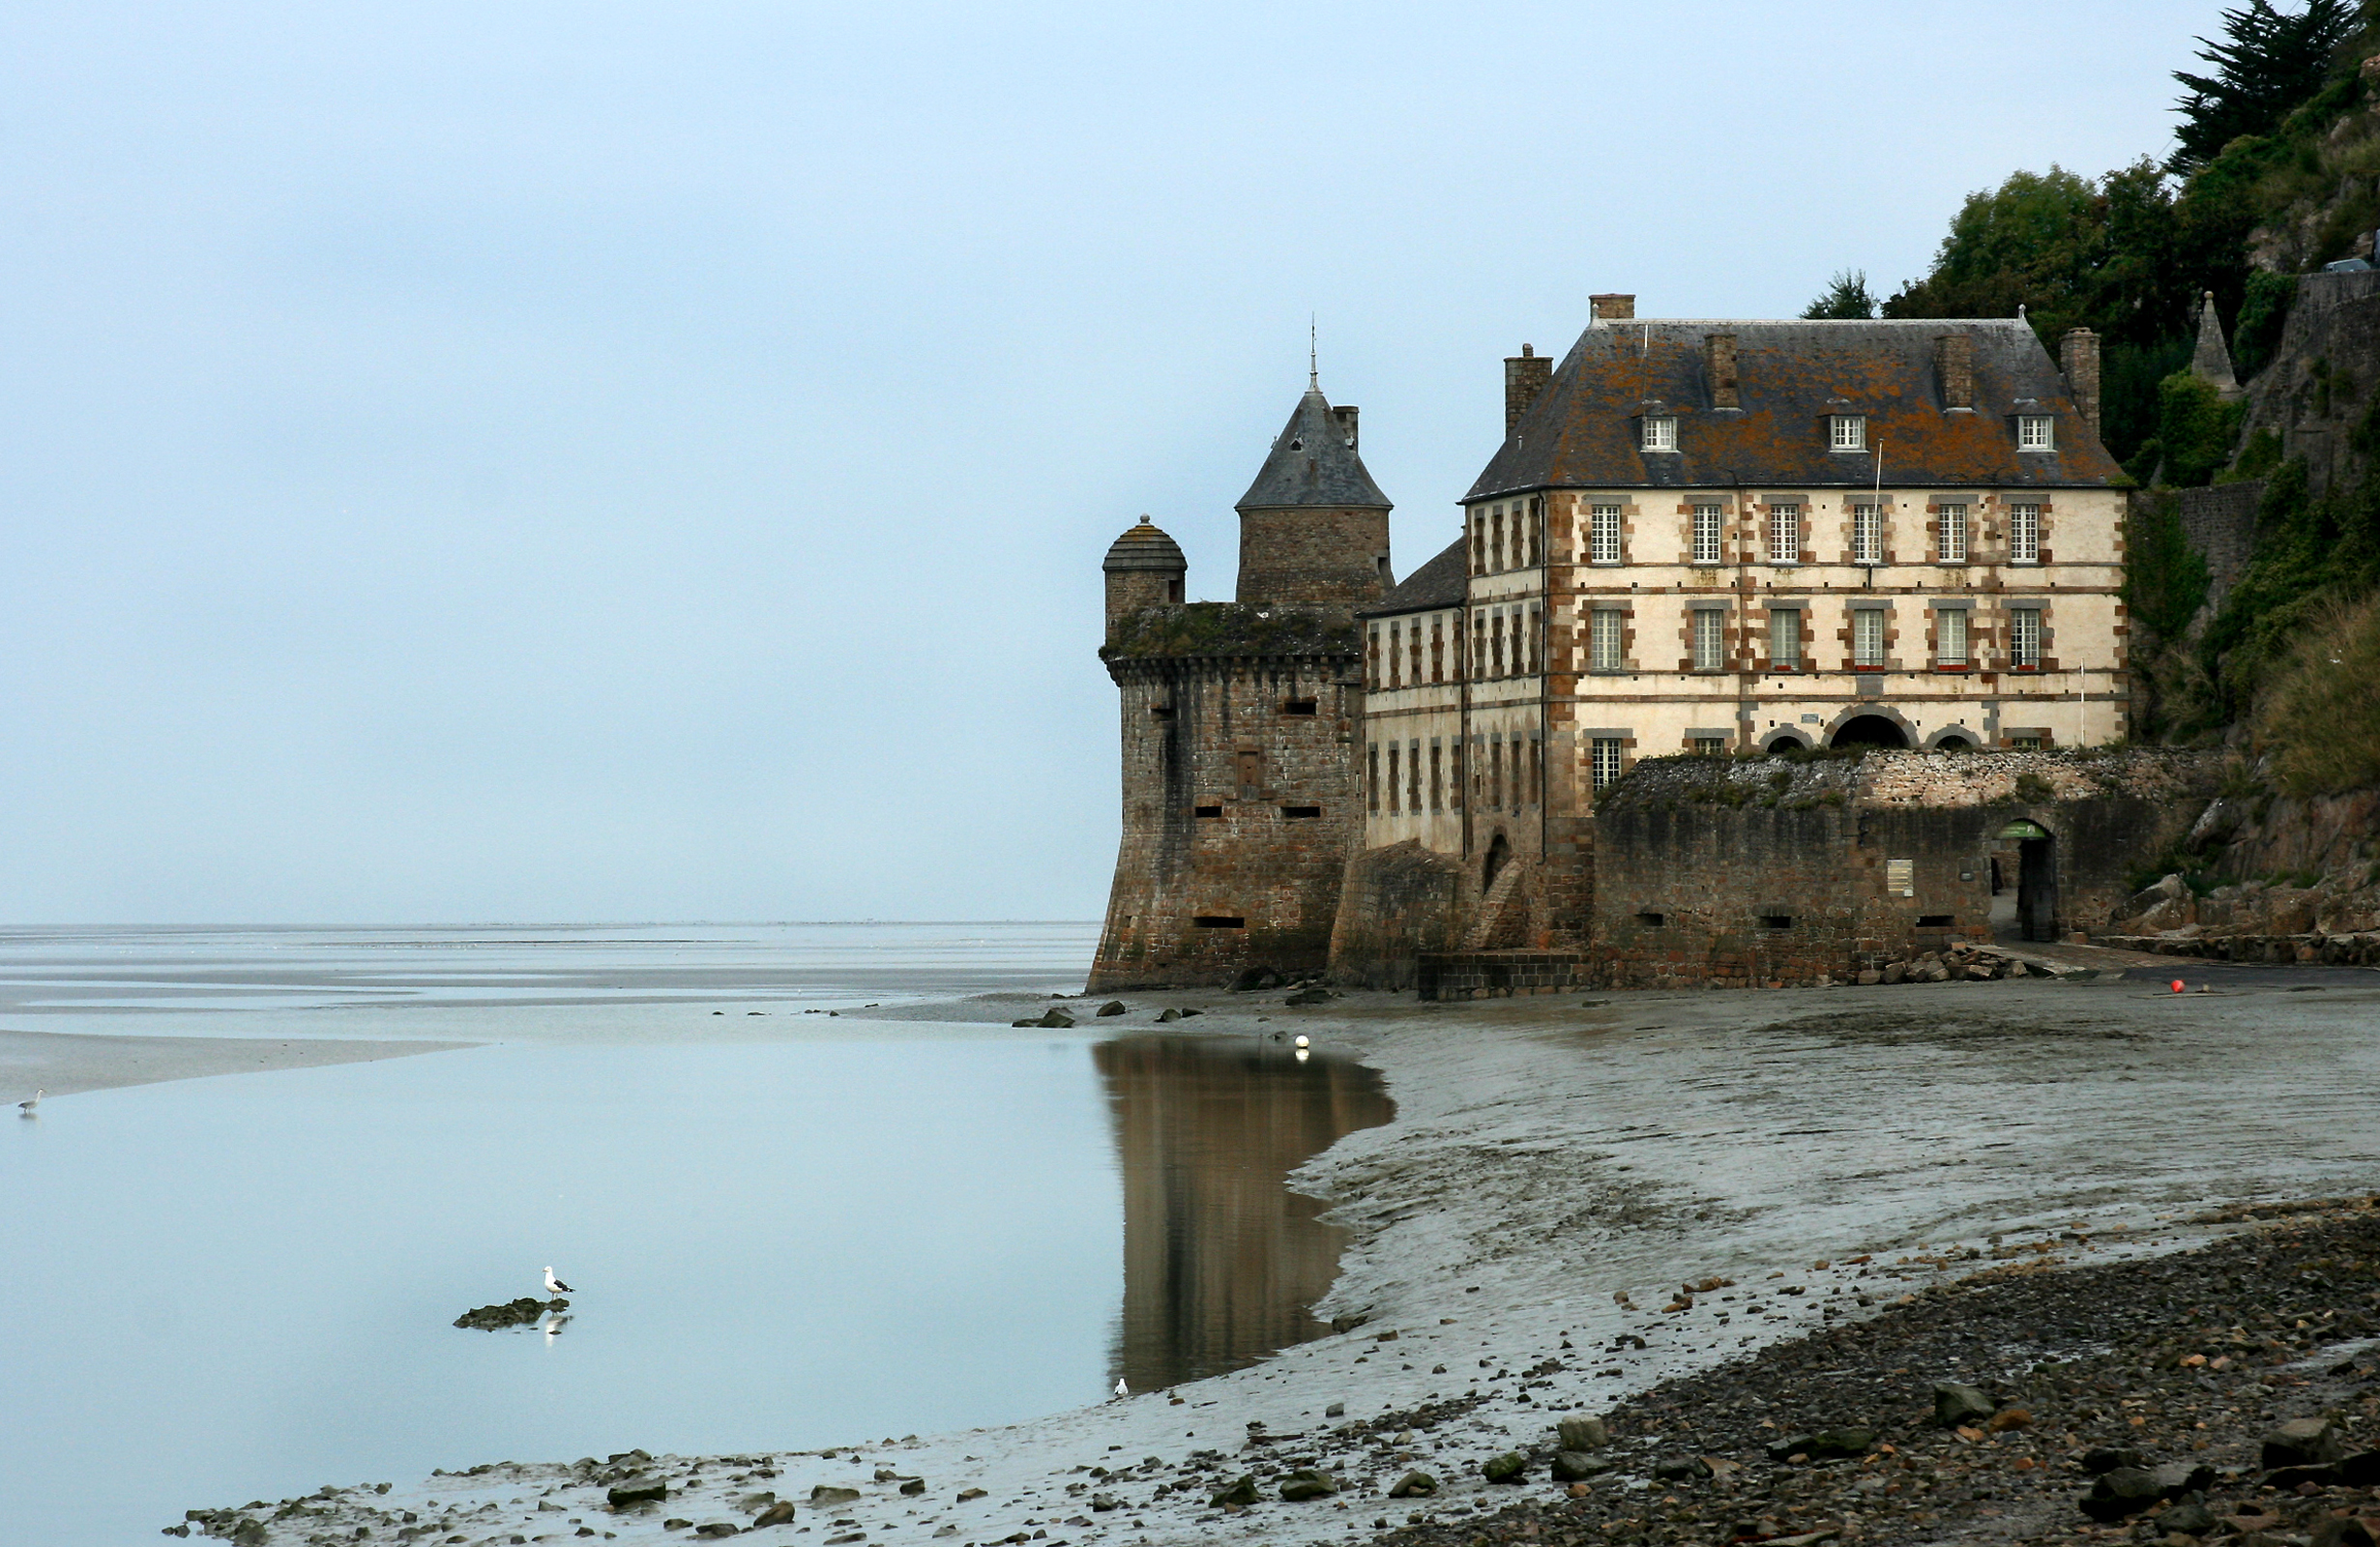 Morning fog, Beach, Bird, Building, Castle, HQ Photo